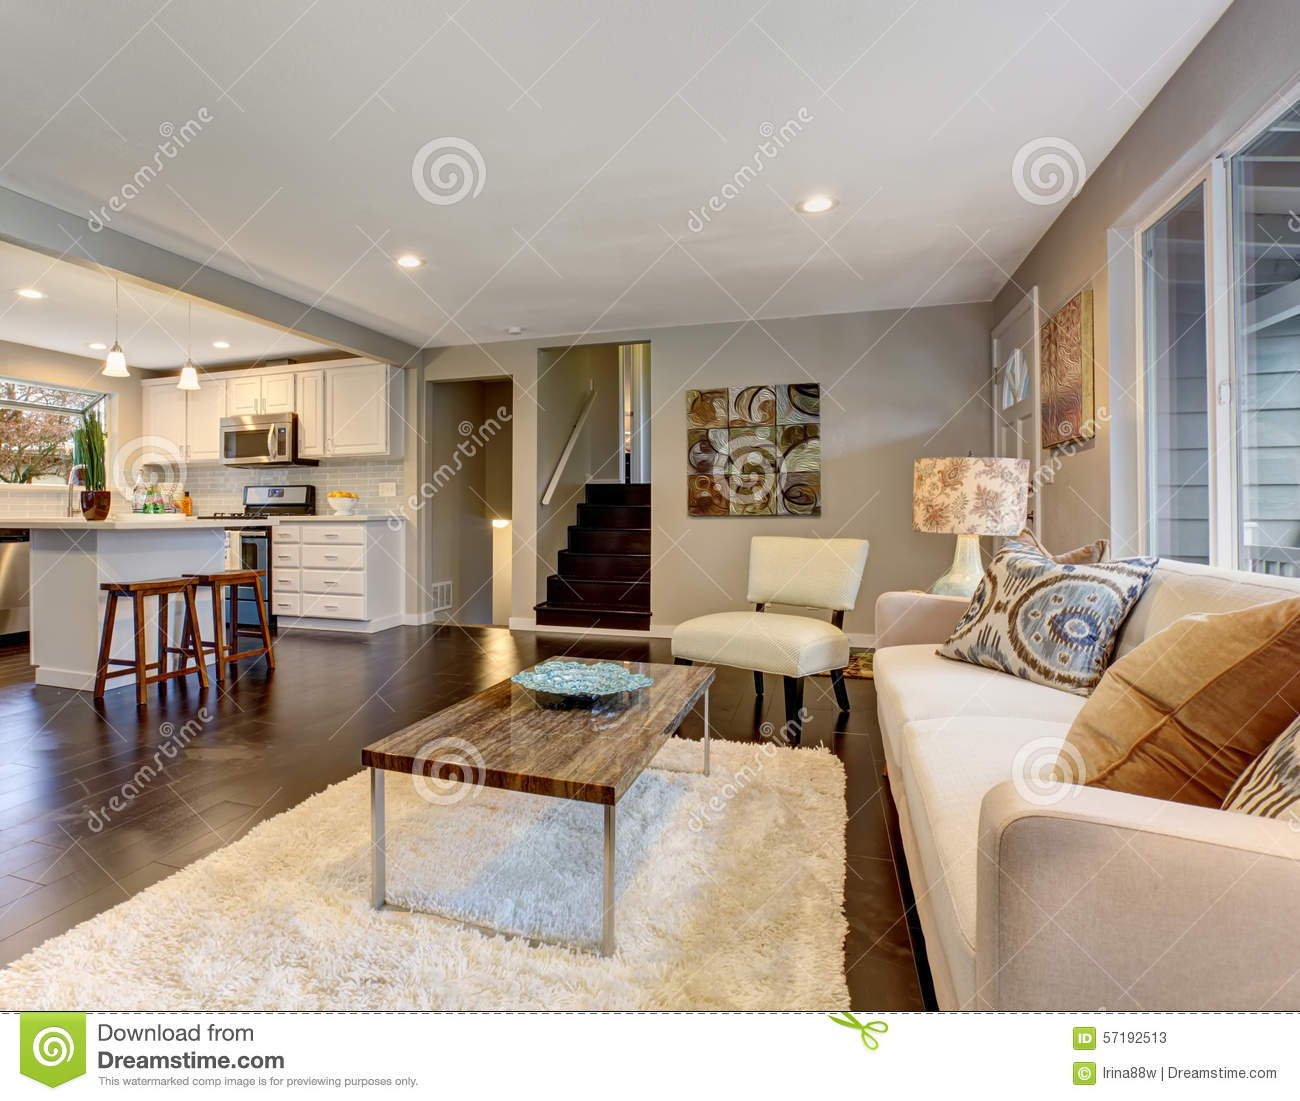 modern living room with dark wood floors decorating ideas cream walls hardwood floor stock image of and a white fluffy rug